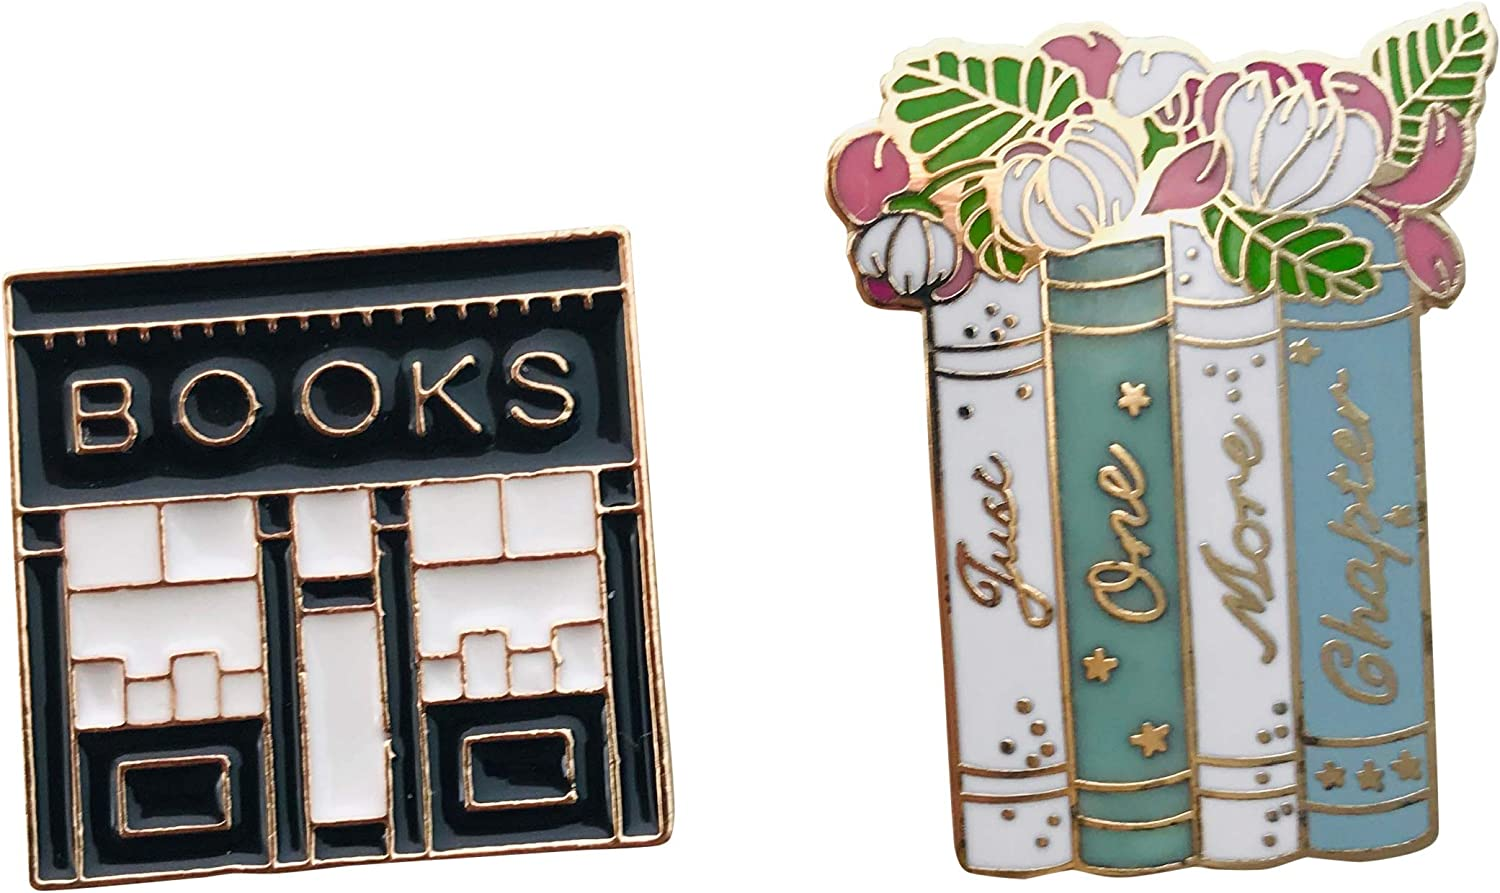 2 piece Enamel Pin Set Book Lover pins for purse or clothes 1.25 Inch PinBack Backpack Pins Buttons Gift for Book Lover Gold Rimmed Packaged Beautifully